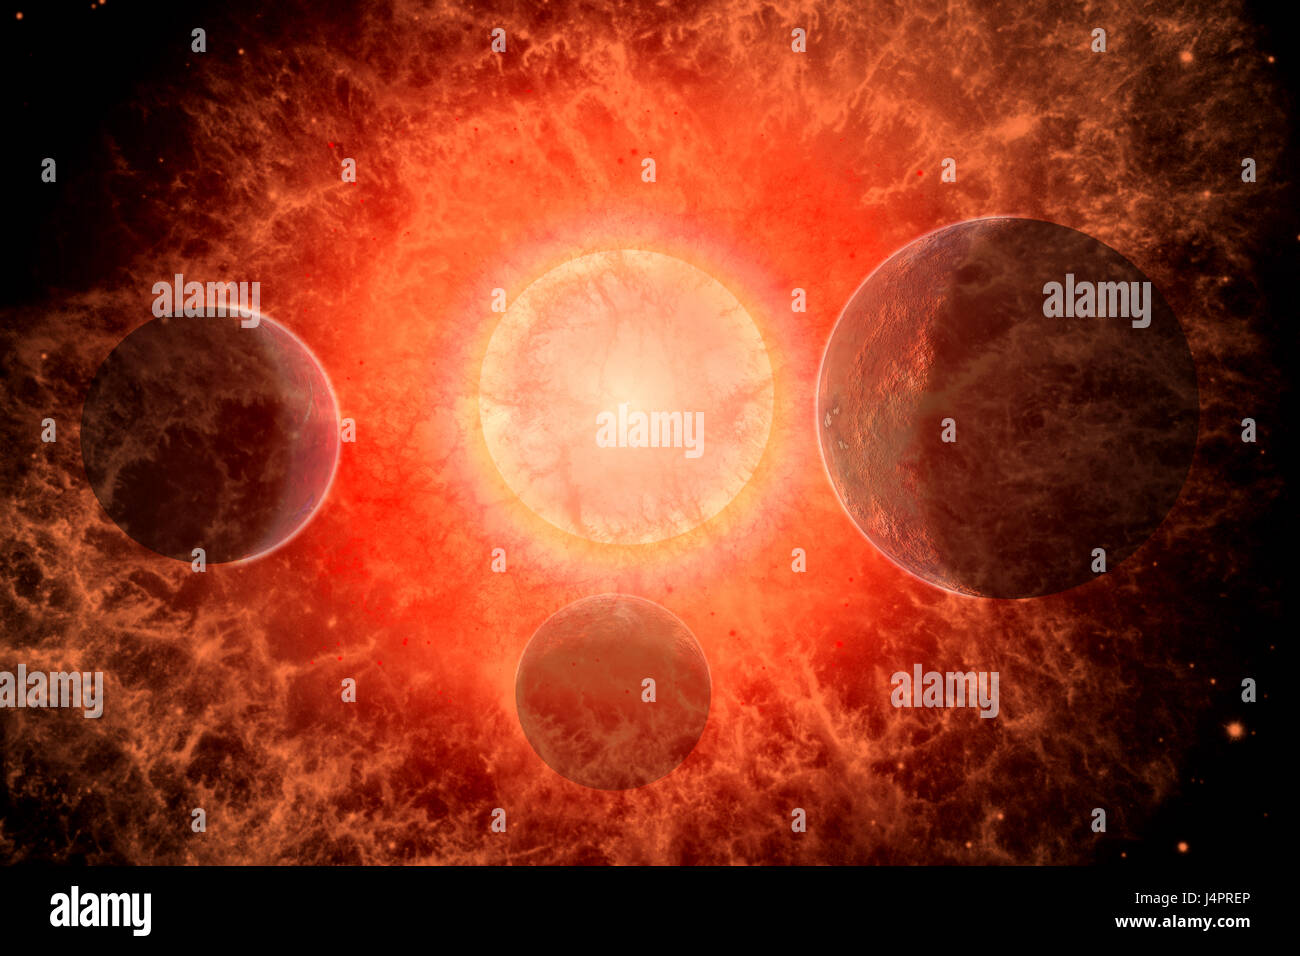 A Supernova , The Destructive End Of A Dying Star. - Stock Image